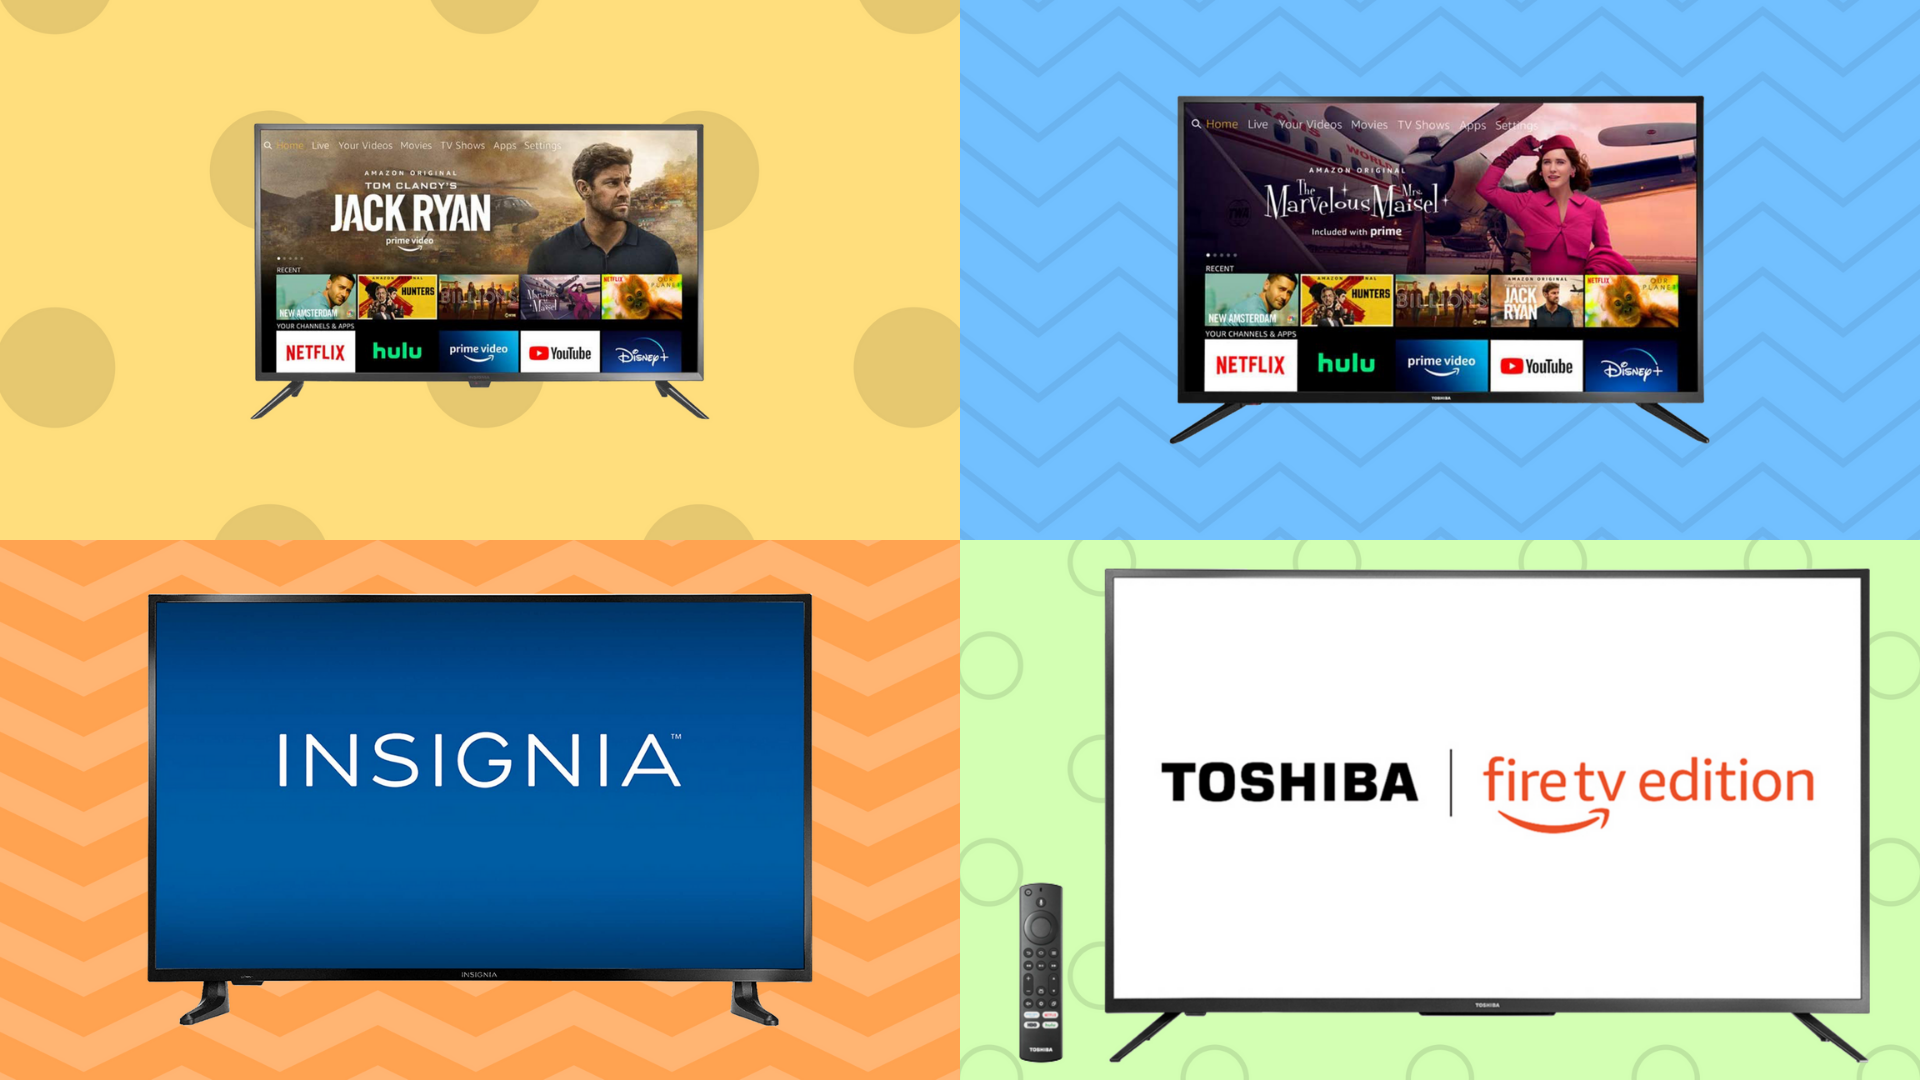 Ooh! Amazon just dropped a massive early Prime Day sale on Fire TVs — starting at $100